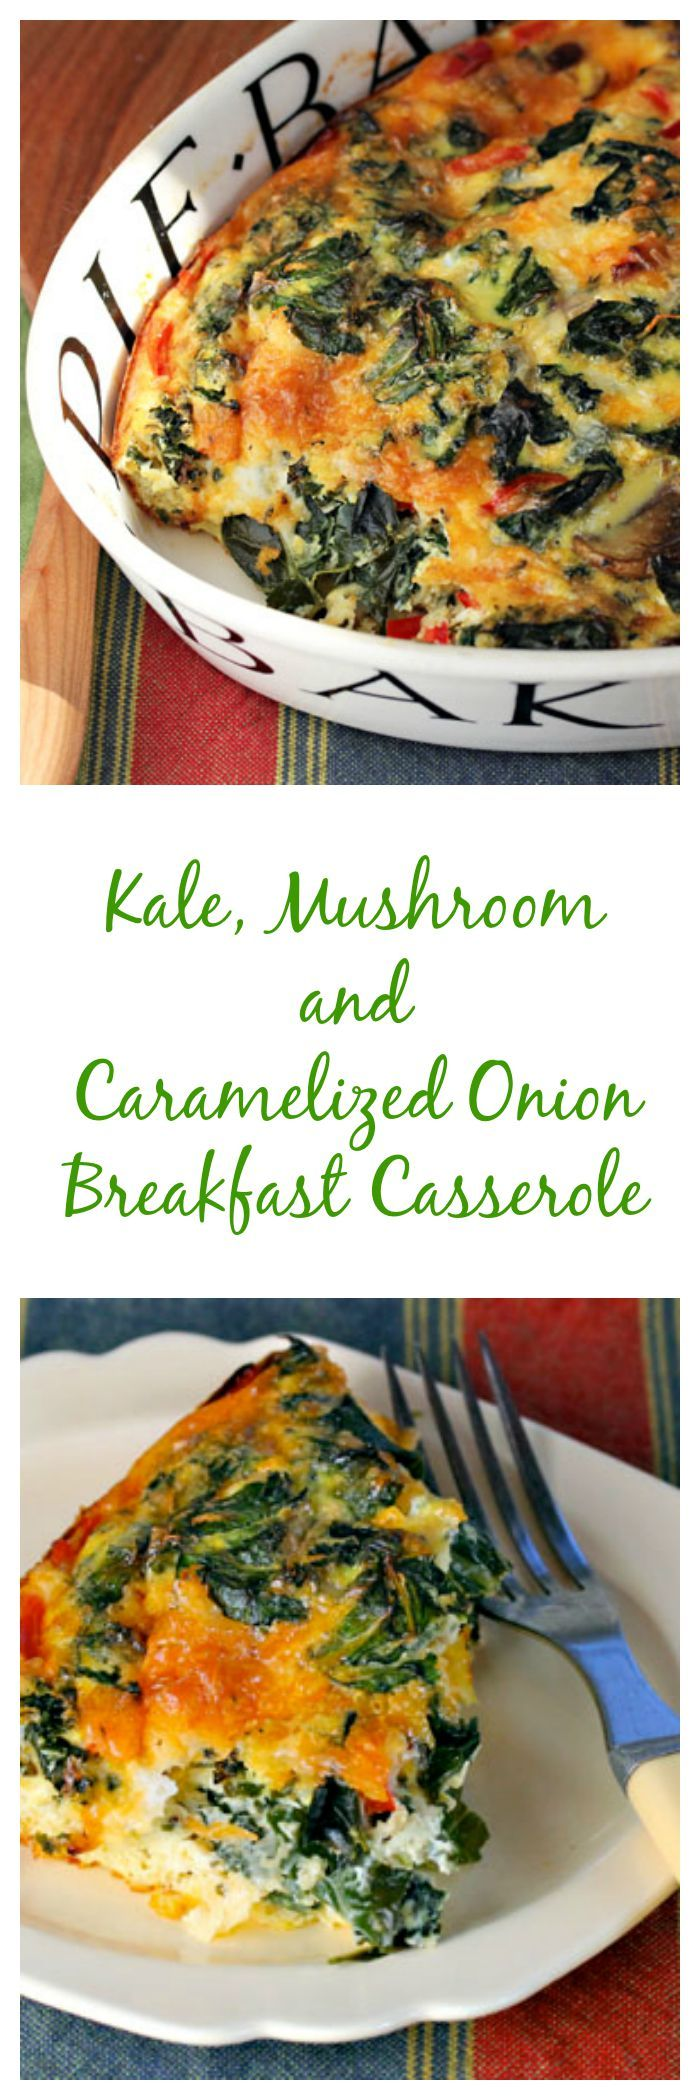 Eat your dark leafy greens first thing in the morning, in this easy kale, mushroom and caramelized onion breakfast casserole from The Perfect Pantry.